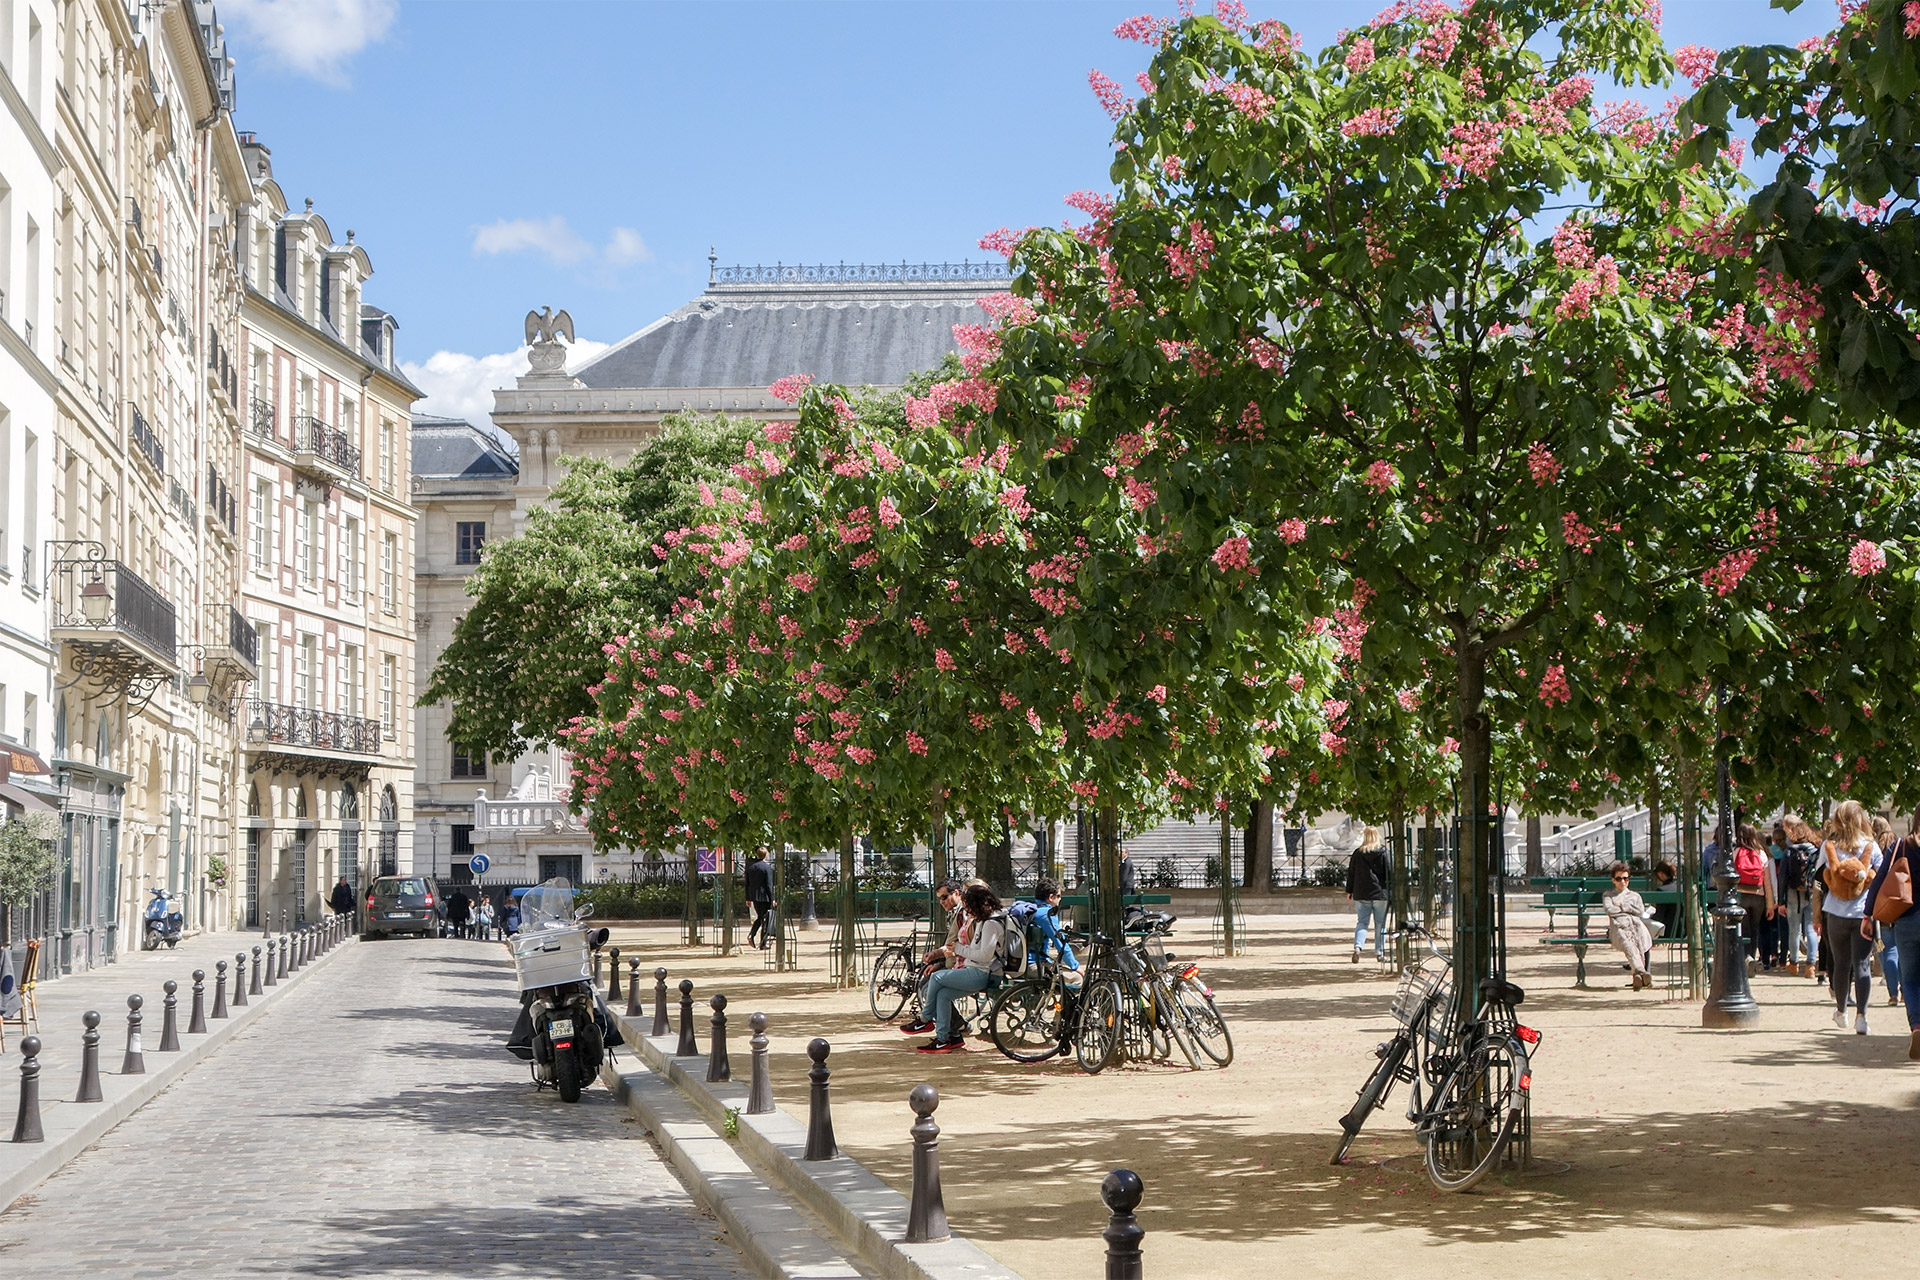 Place Dauphine is one of the most romantic spots in Paris